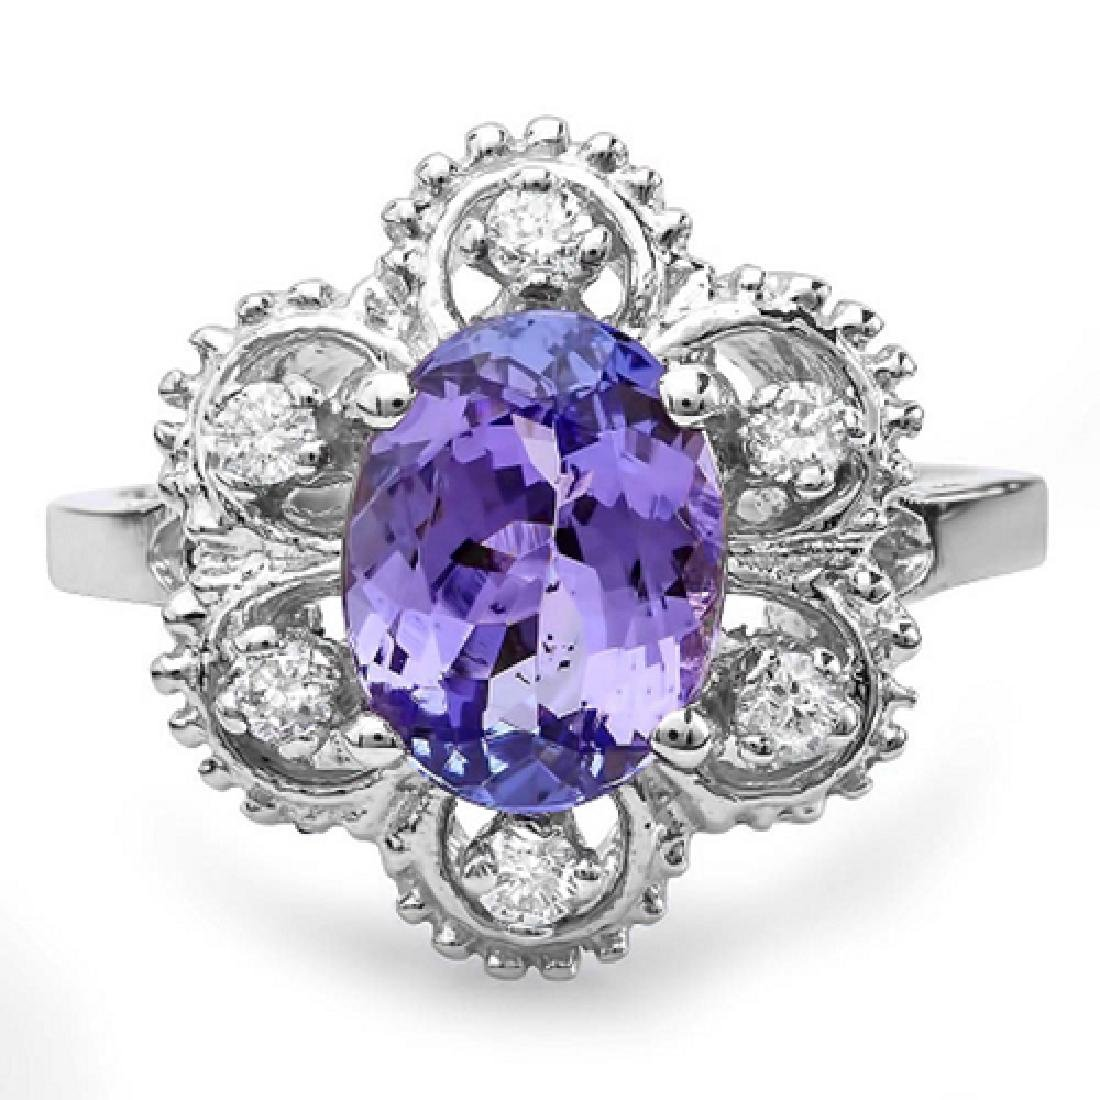 2.45 Carat Natural Tanzanite 18K Solid White Gold